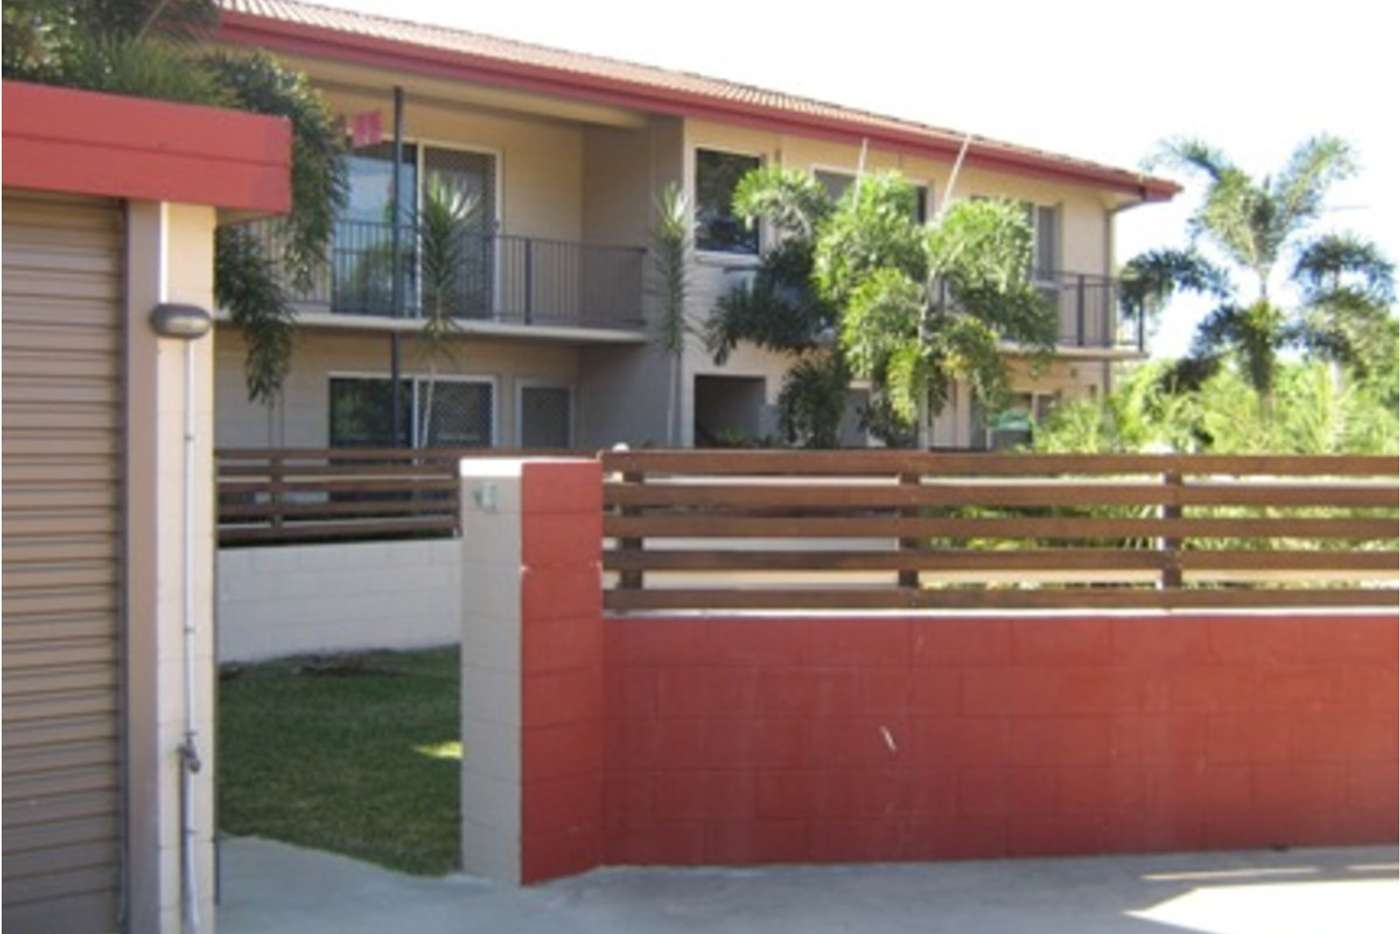 Main view of Homely flat listing, 1/2 Howitt Street, North Ward QLD 4810